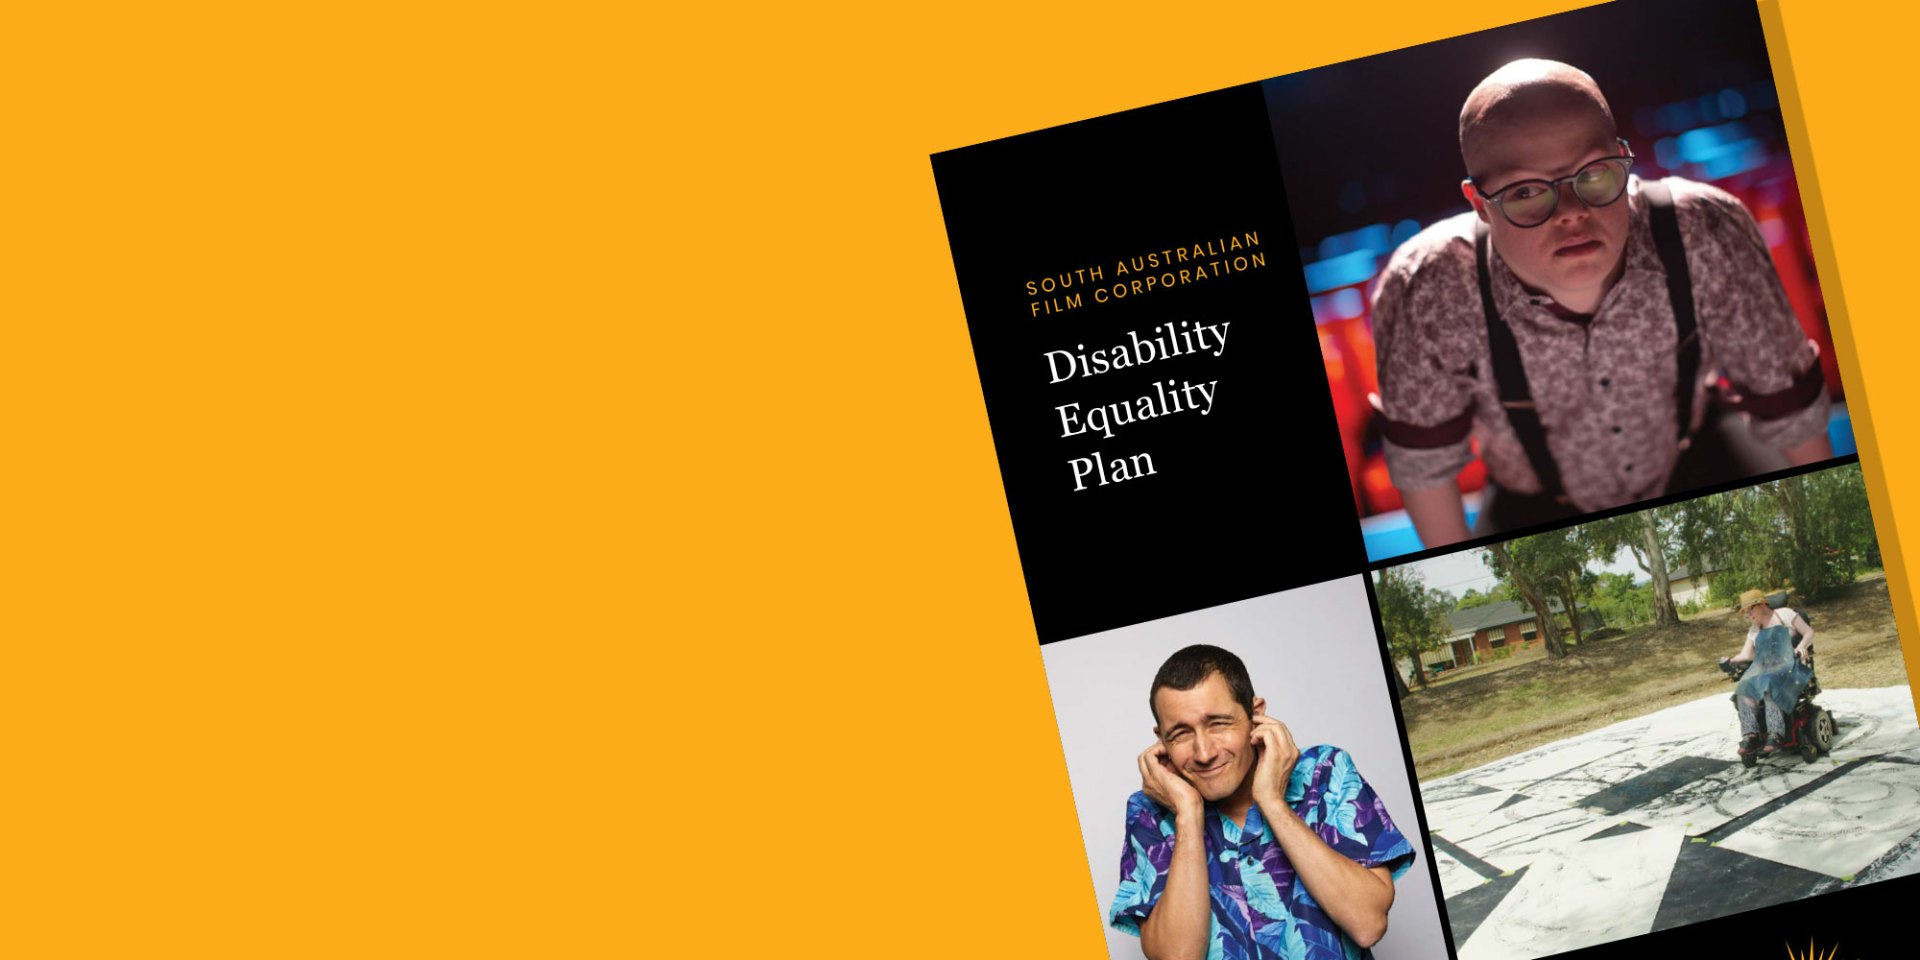 Disability Equality Plan banner